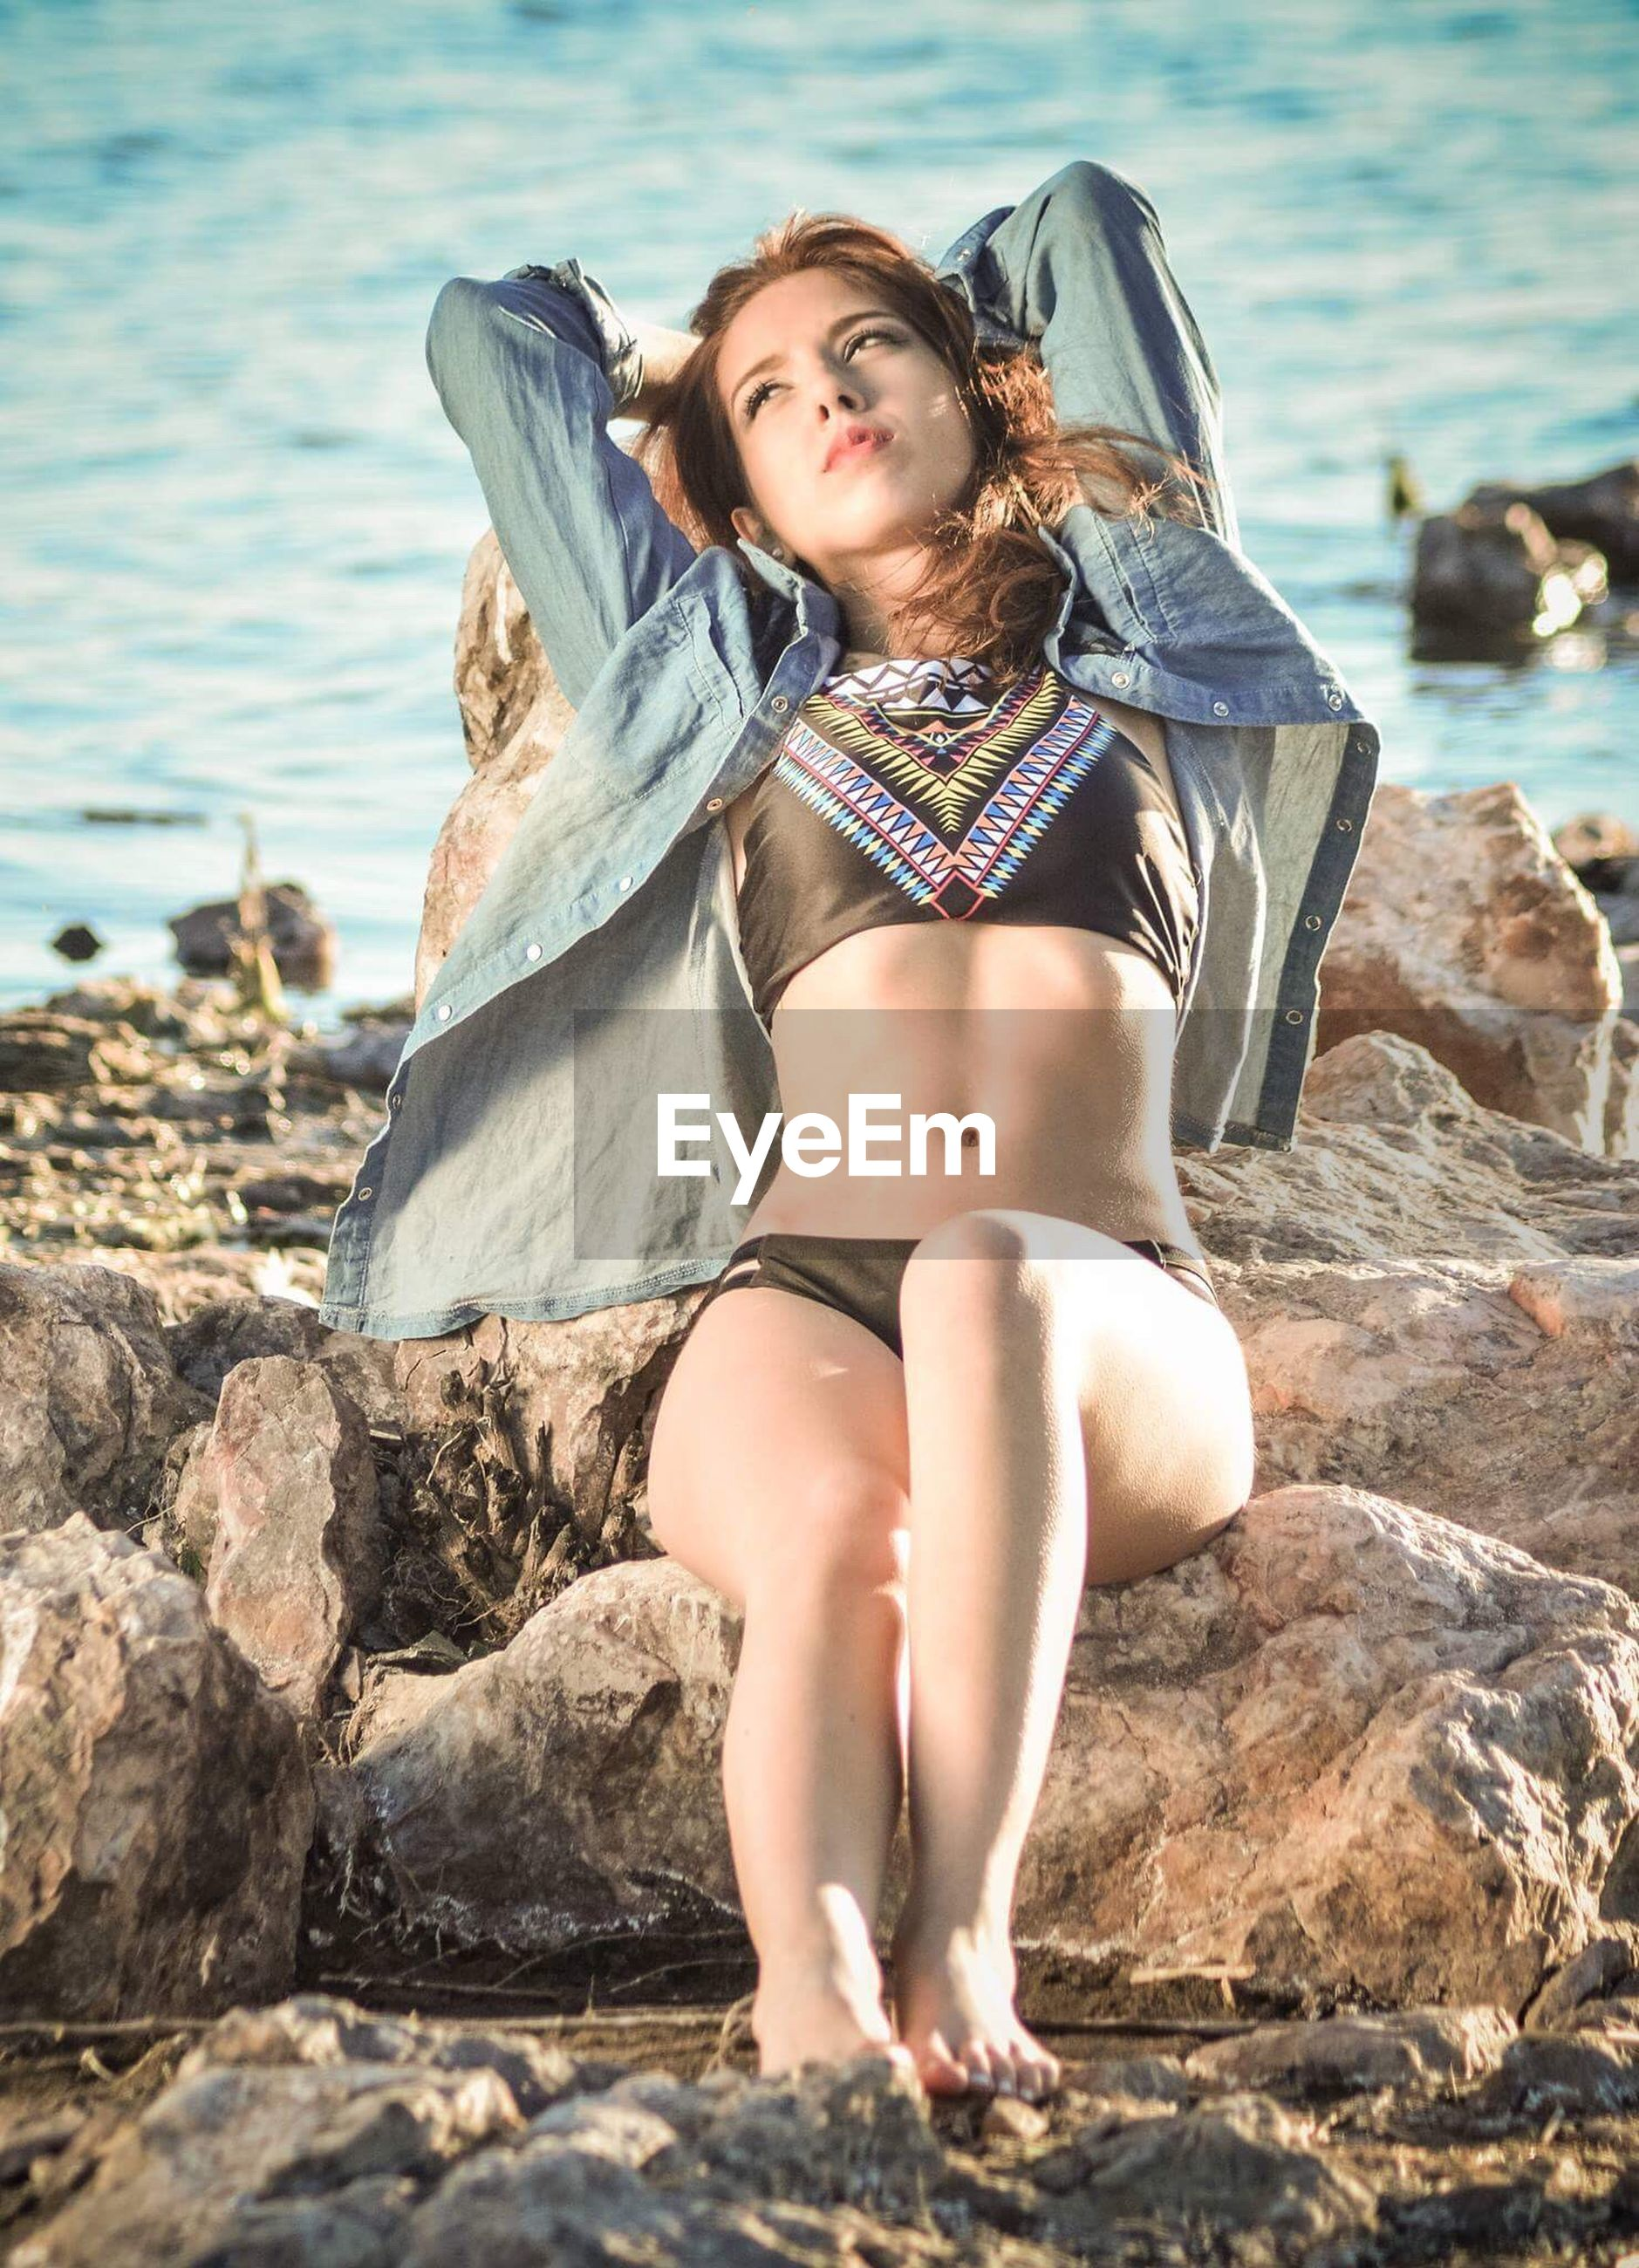 young women, young adult, water, sea, full length, beauty, sensuality, person, beach, long hair, fashion, leisure activity, front view, casual clothing, shore, seductive women, seashore, looking at camera, fashionable, nature, day, scenics, outdoors, tranquil scene